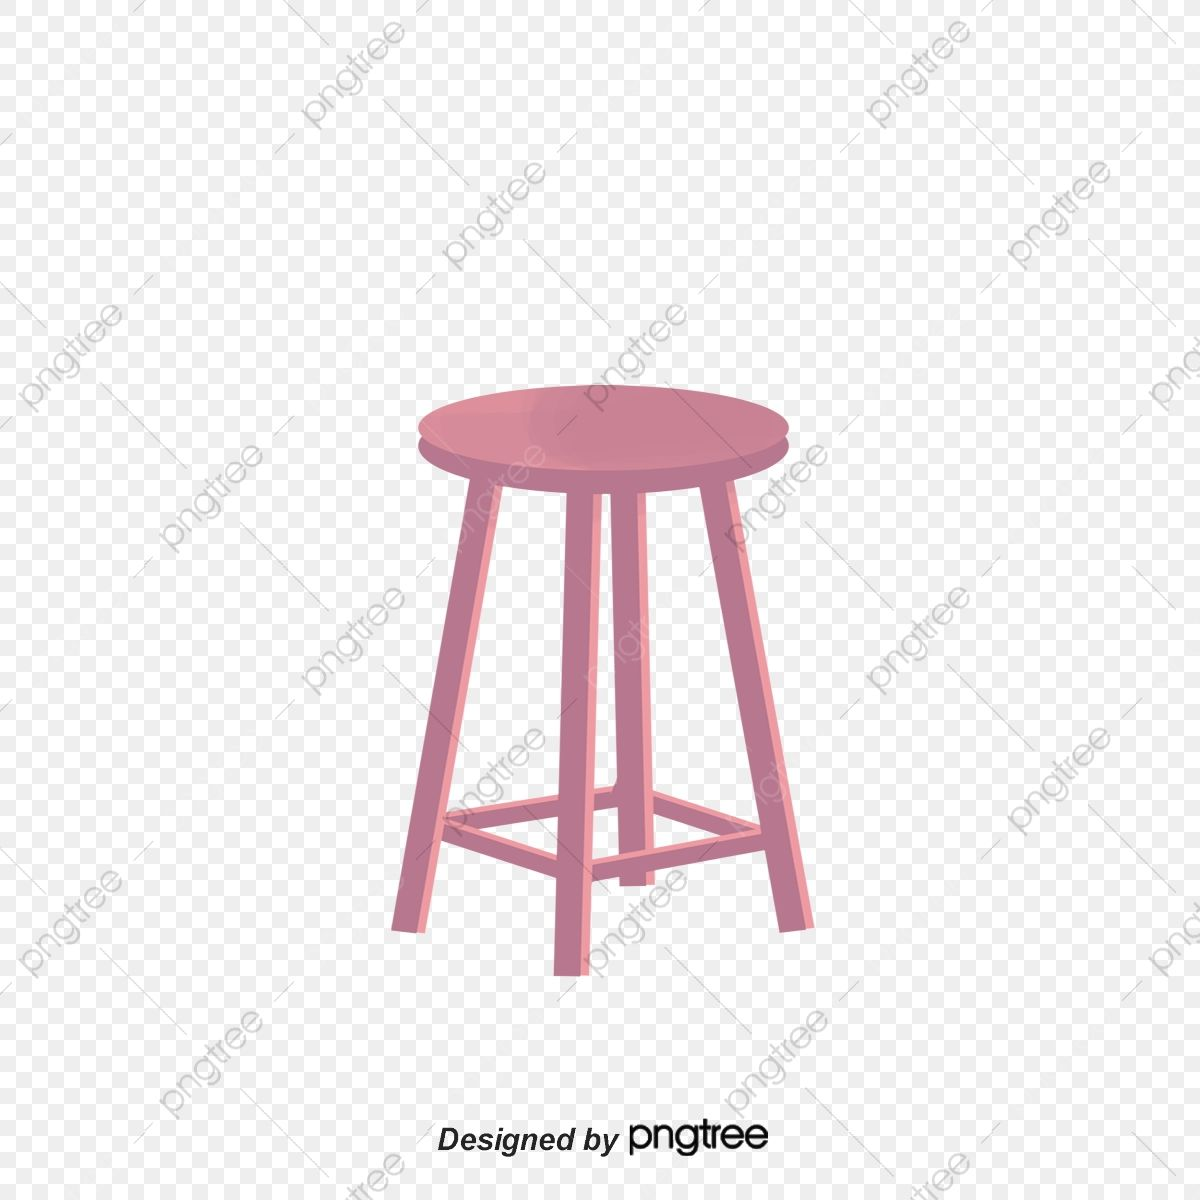 Pink Round Chair Seat Circular Furniture Chair Png Transparent Clipart Image And Psd File For Free Download En 2020